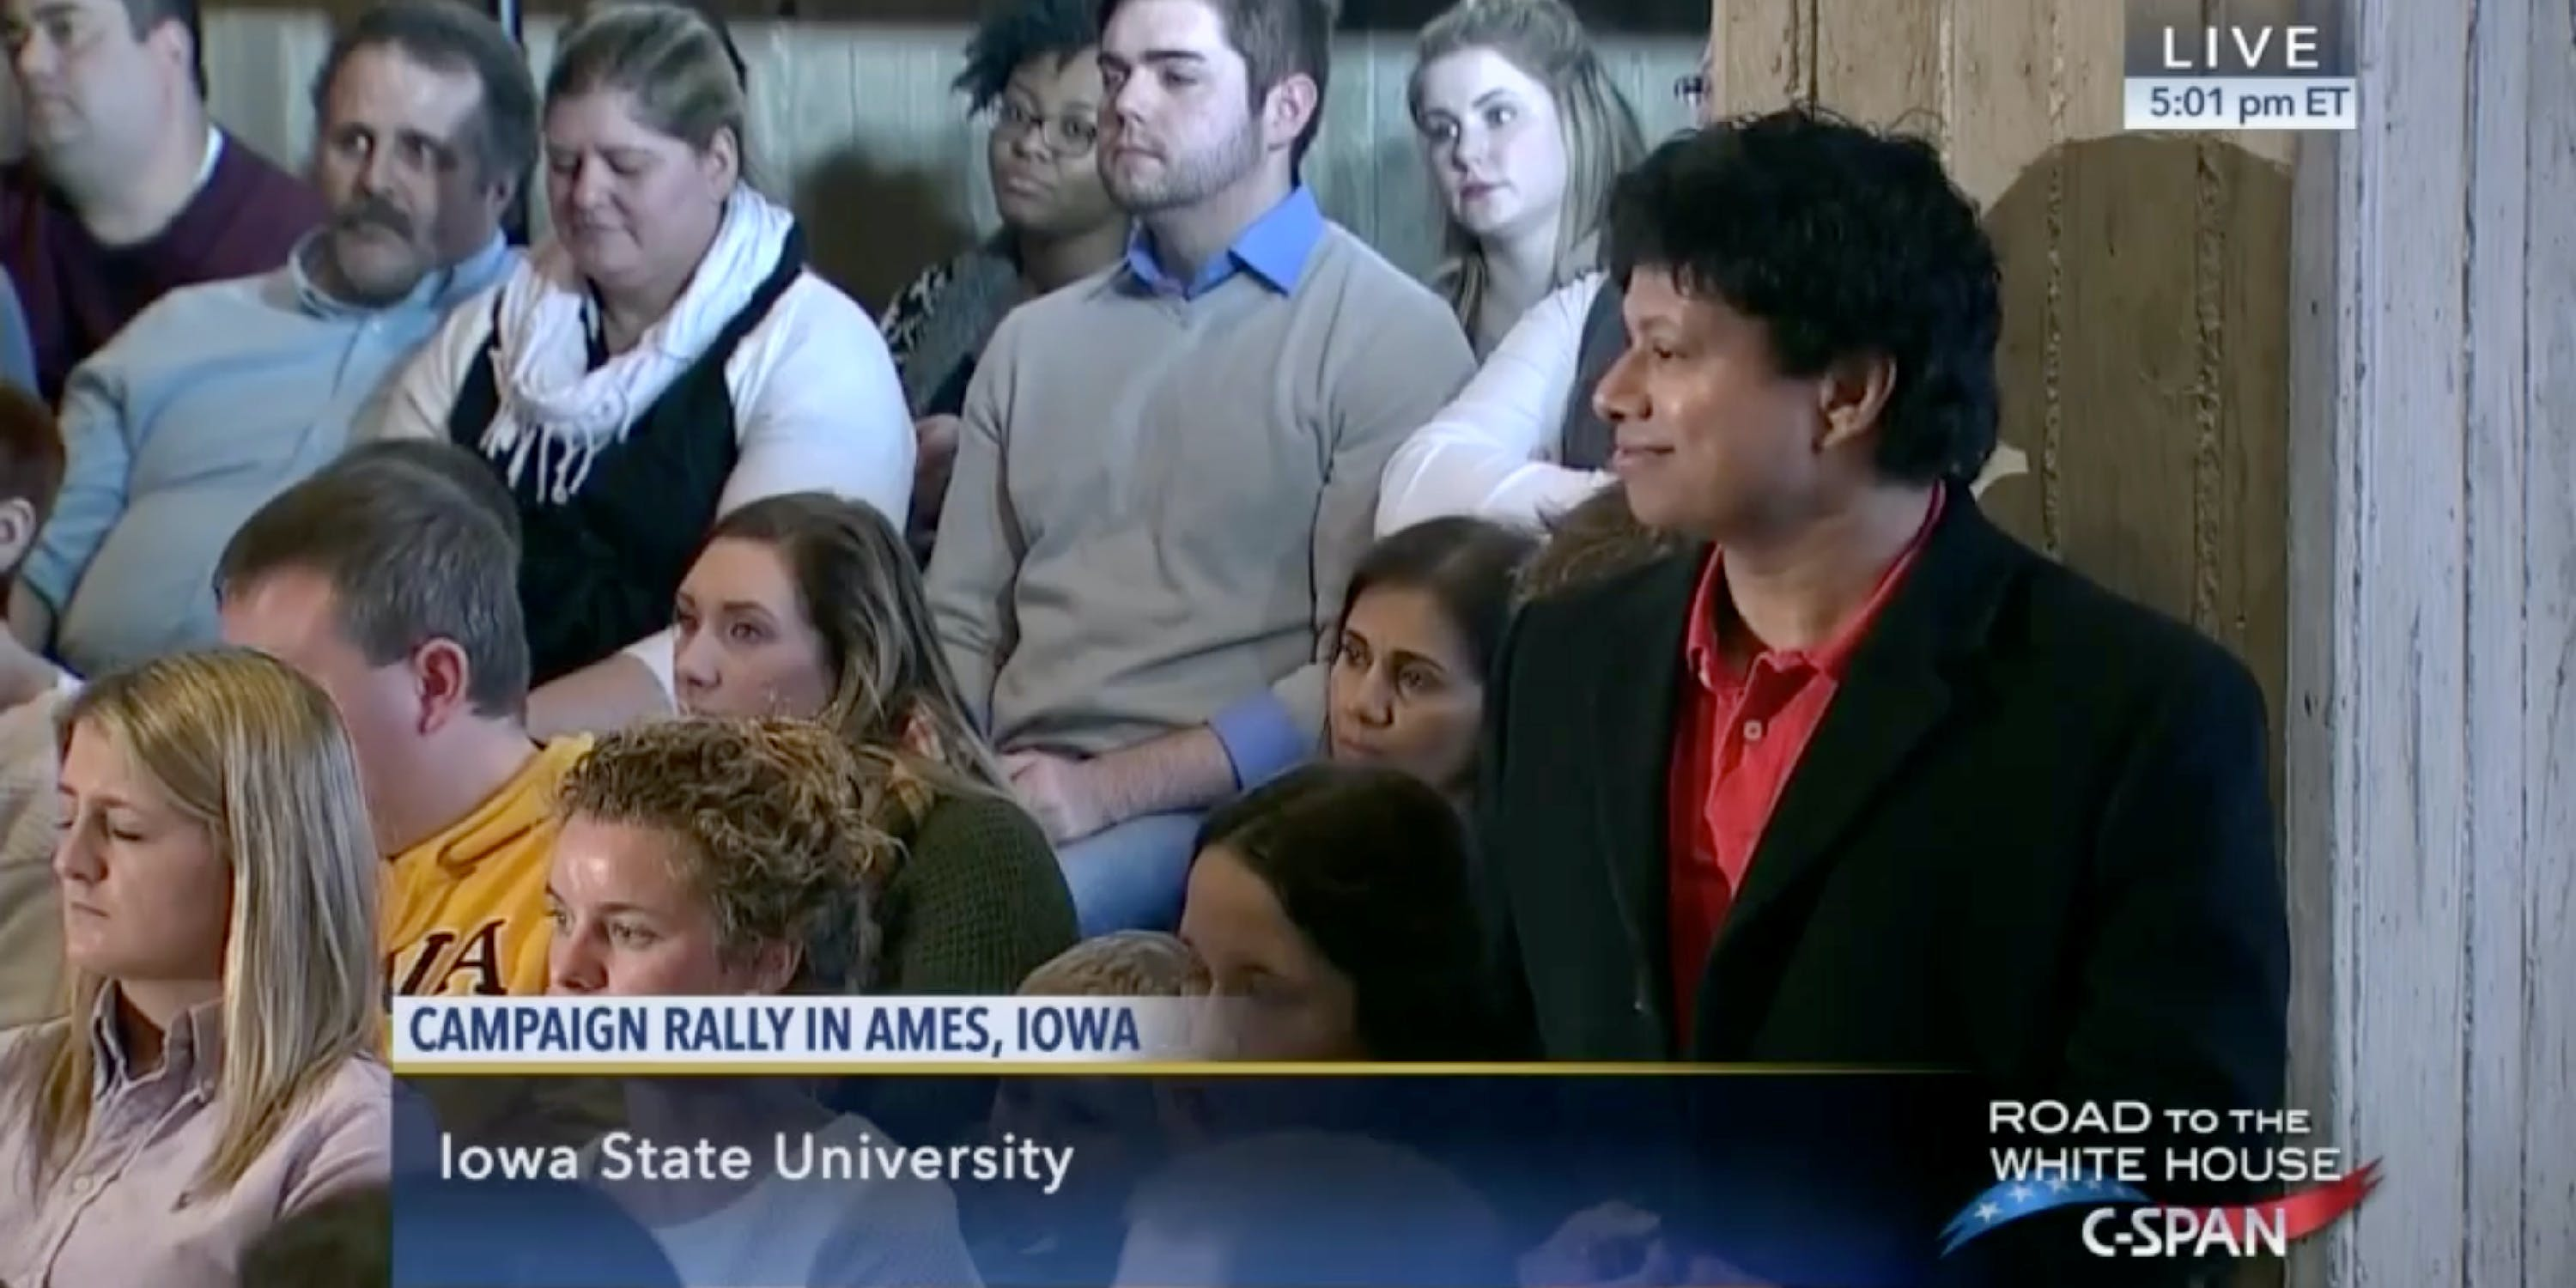 """Most Progressive Democrat"" Shri Thanedar Denied He Was Enamored With Marco Rubio. C-SPAN Footage Begs to Differ."